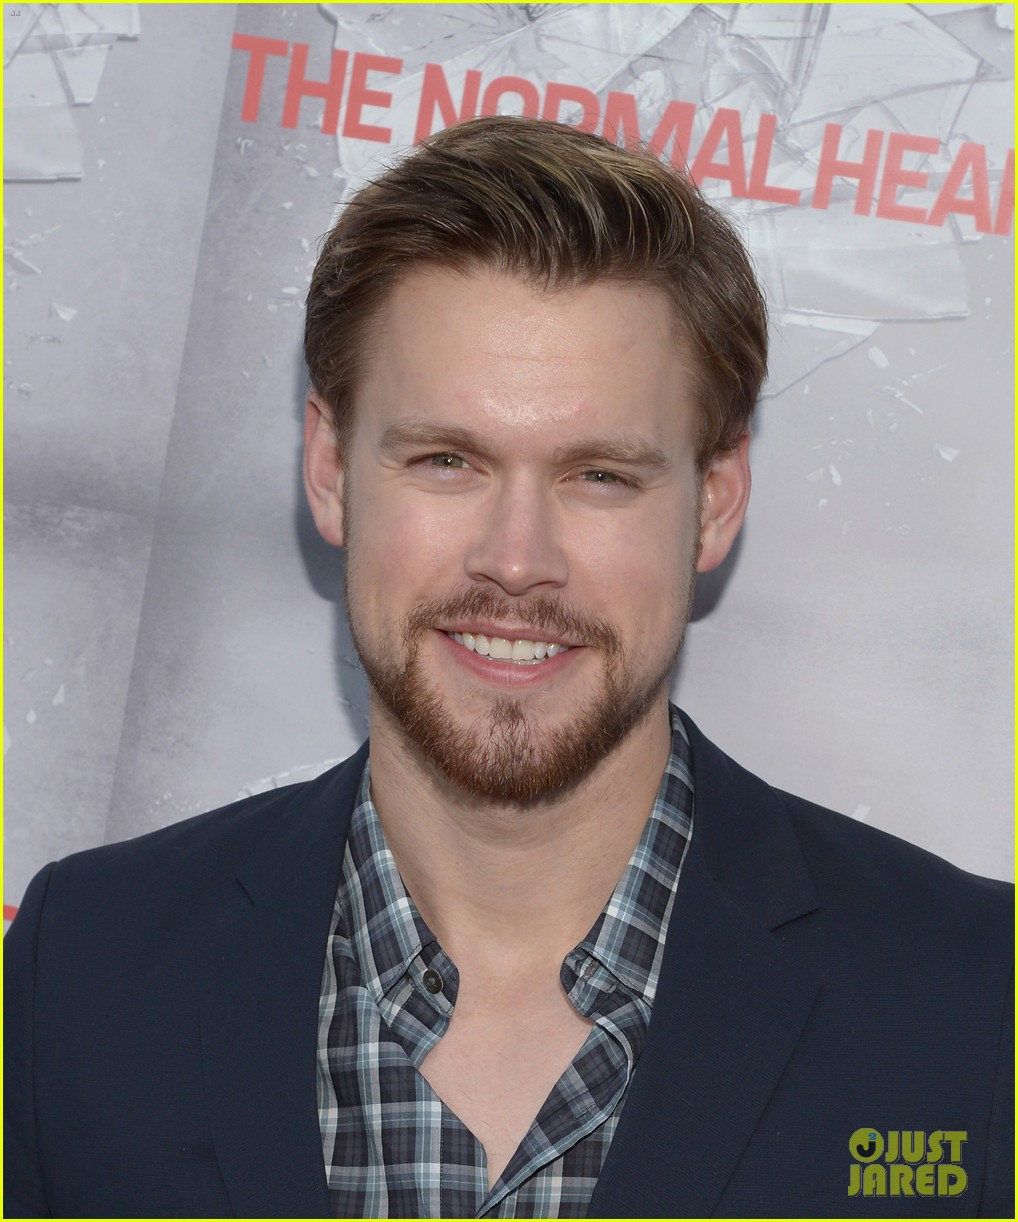 chord overstreet evan peters normal heart premiere 093118018